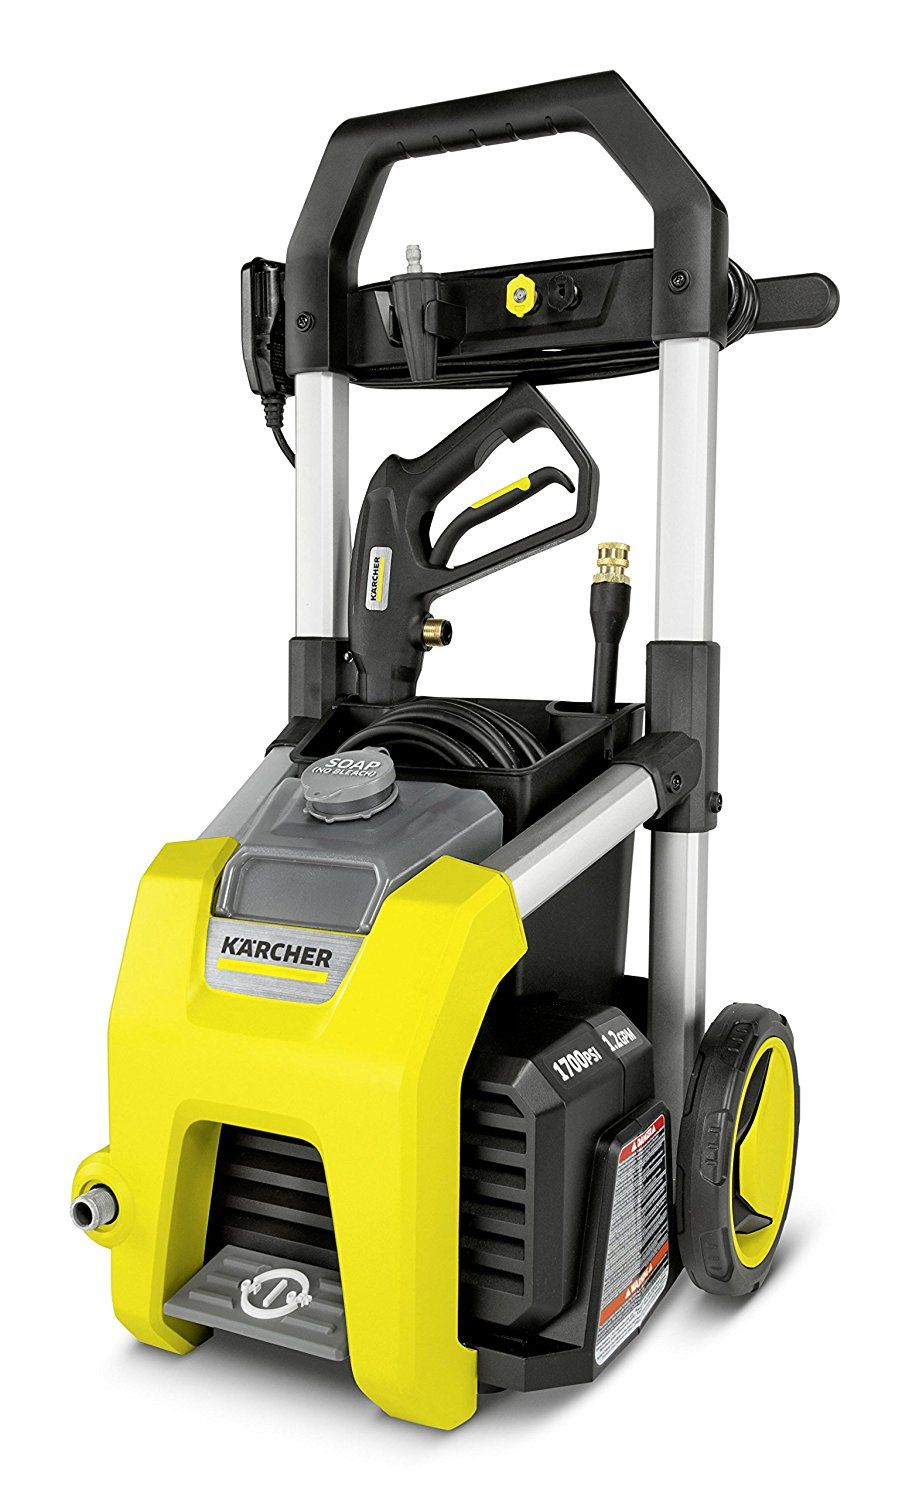 Karcher K1700 Review Best Pressure Washer Electric Pressure Washer Pressure Washer Accessories